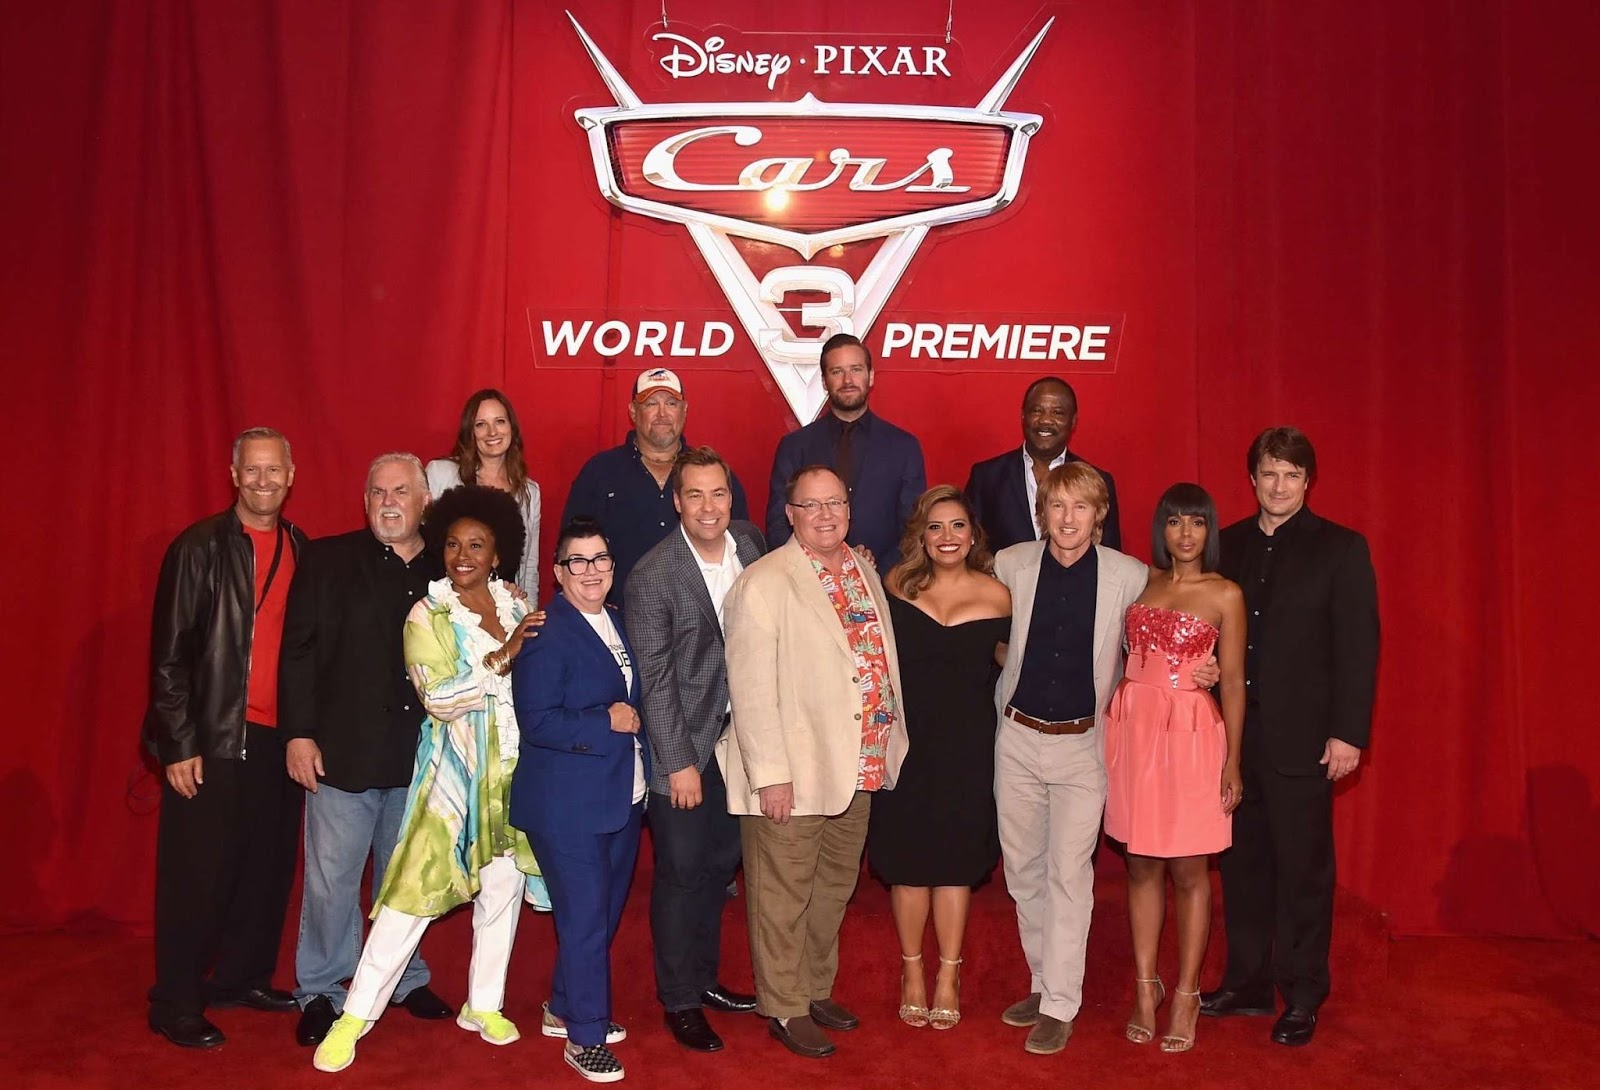 Cars 3 World Premiere From The Anaheim Convention Center